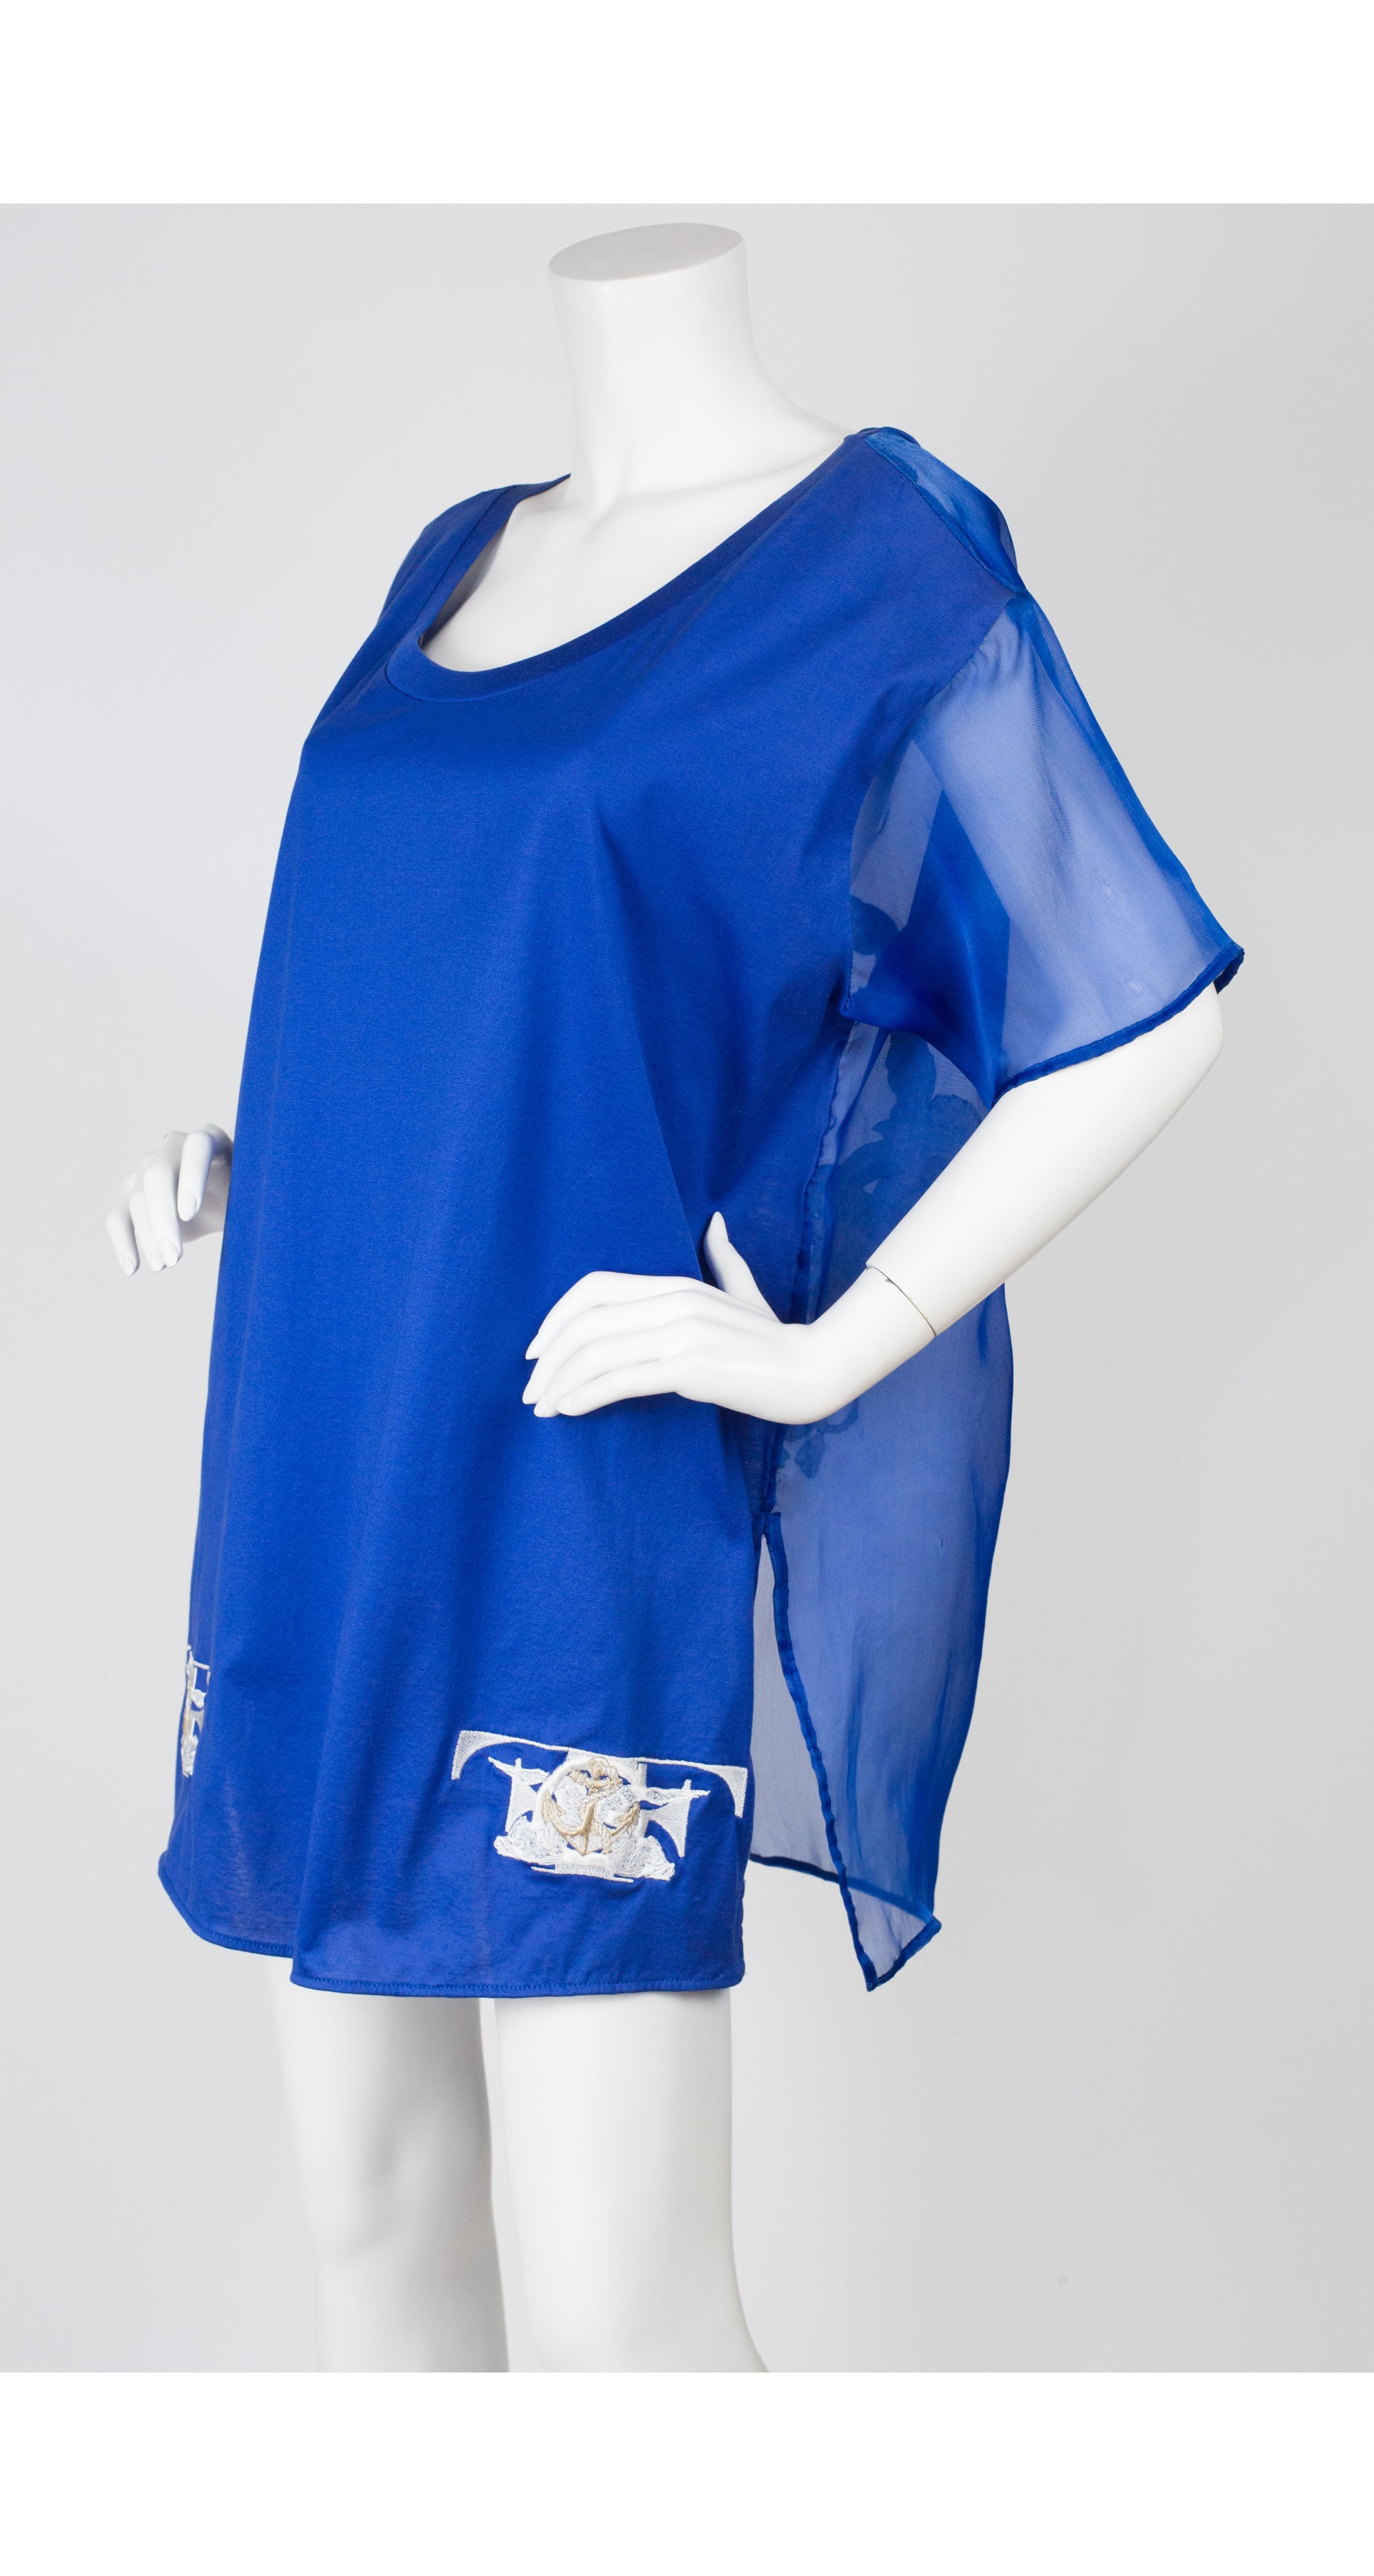 1980s Blue Emblem Logo Silk Organza & Cotton T-Shirt